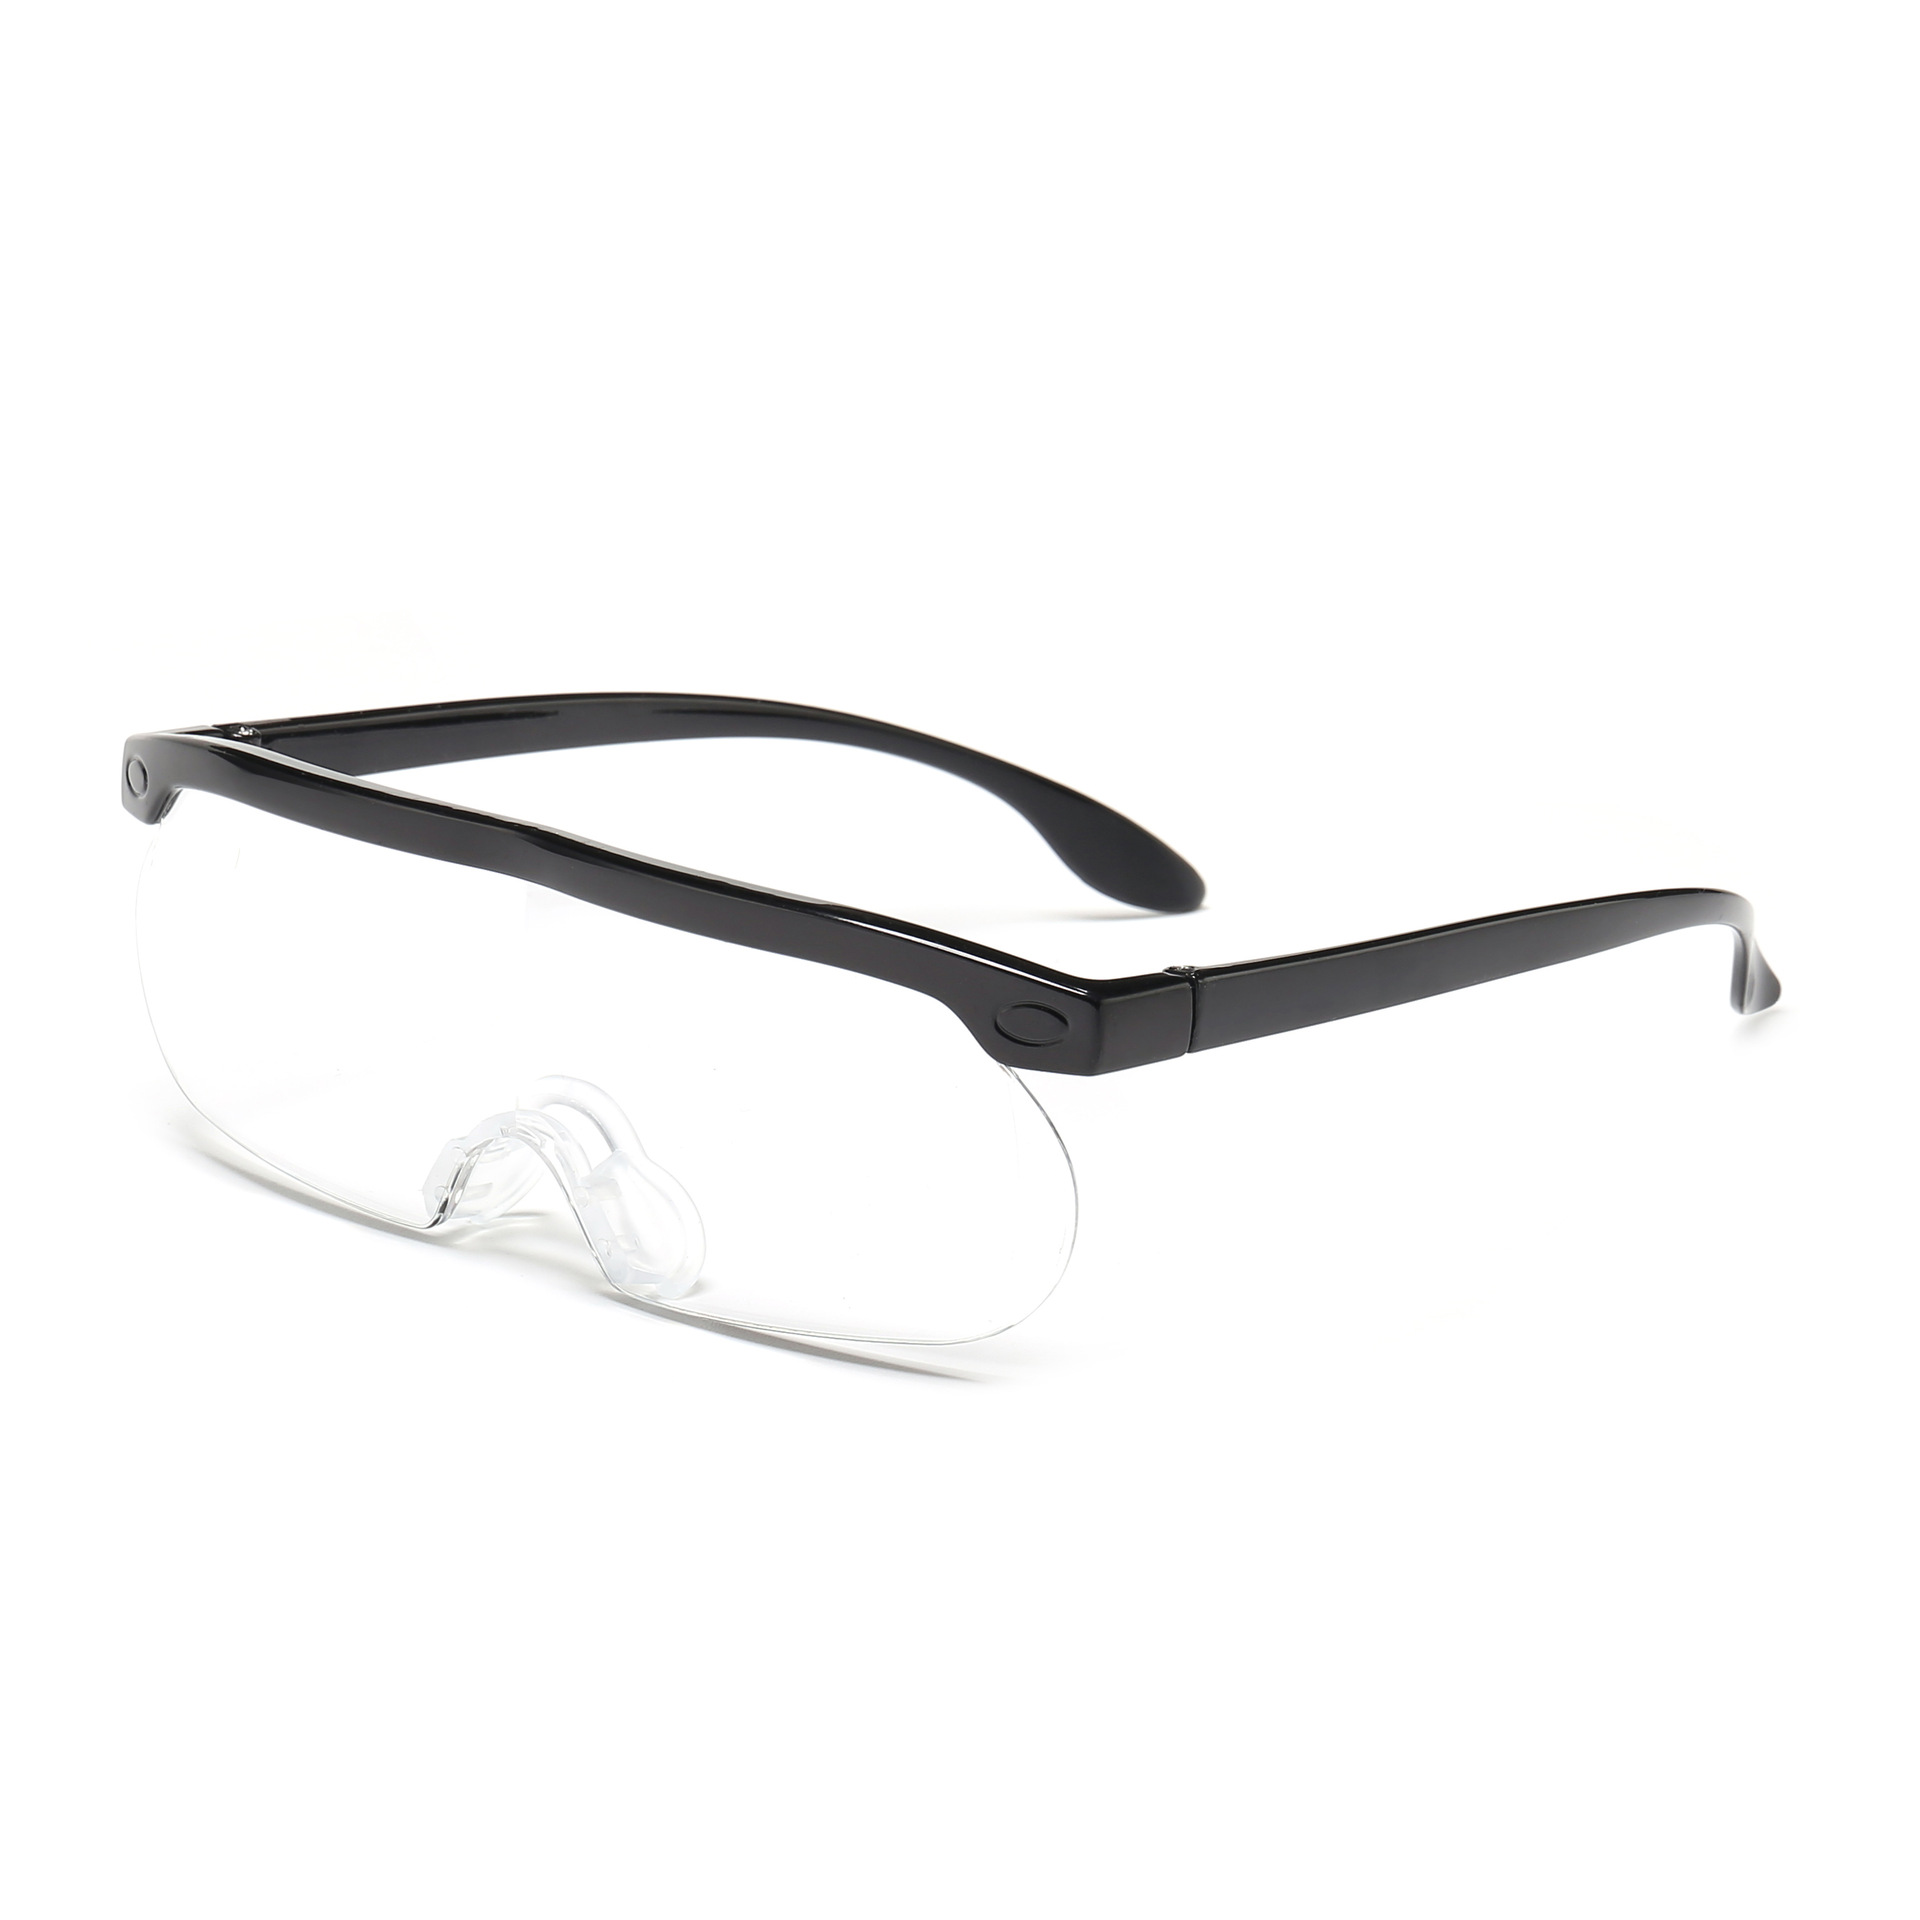 America Hot Selling Big Vision Glasses 250-Degree 1.6 Times Magnifying Glass Sheet High Soft Nose Pads Scratch-Resistant